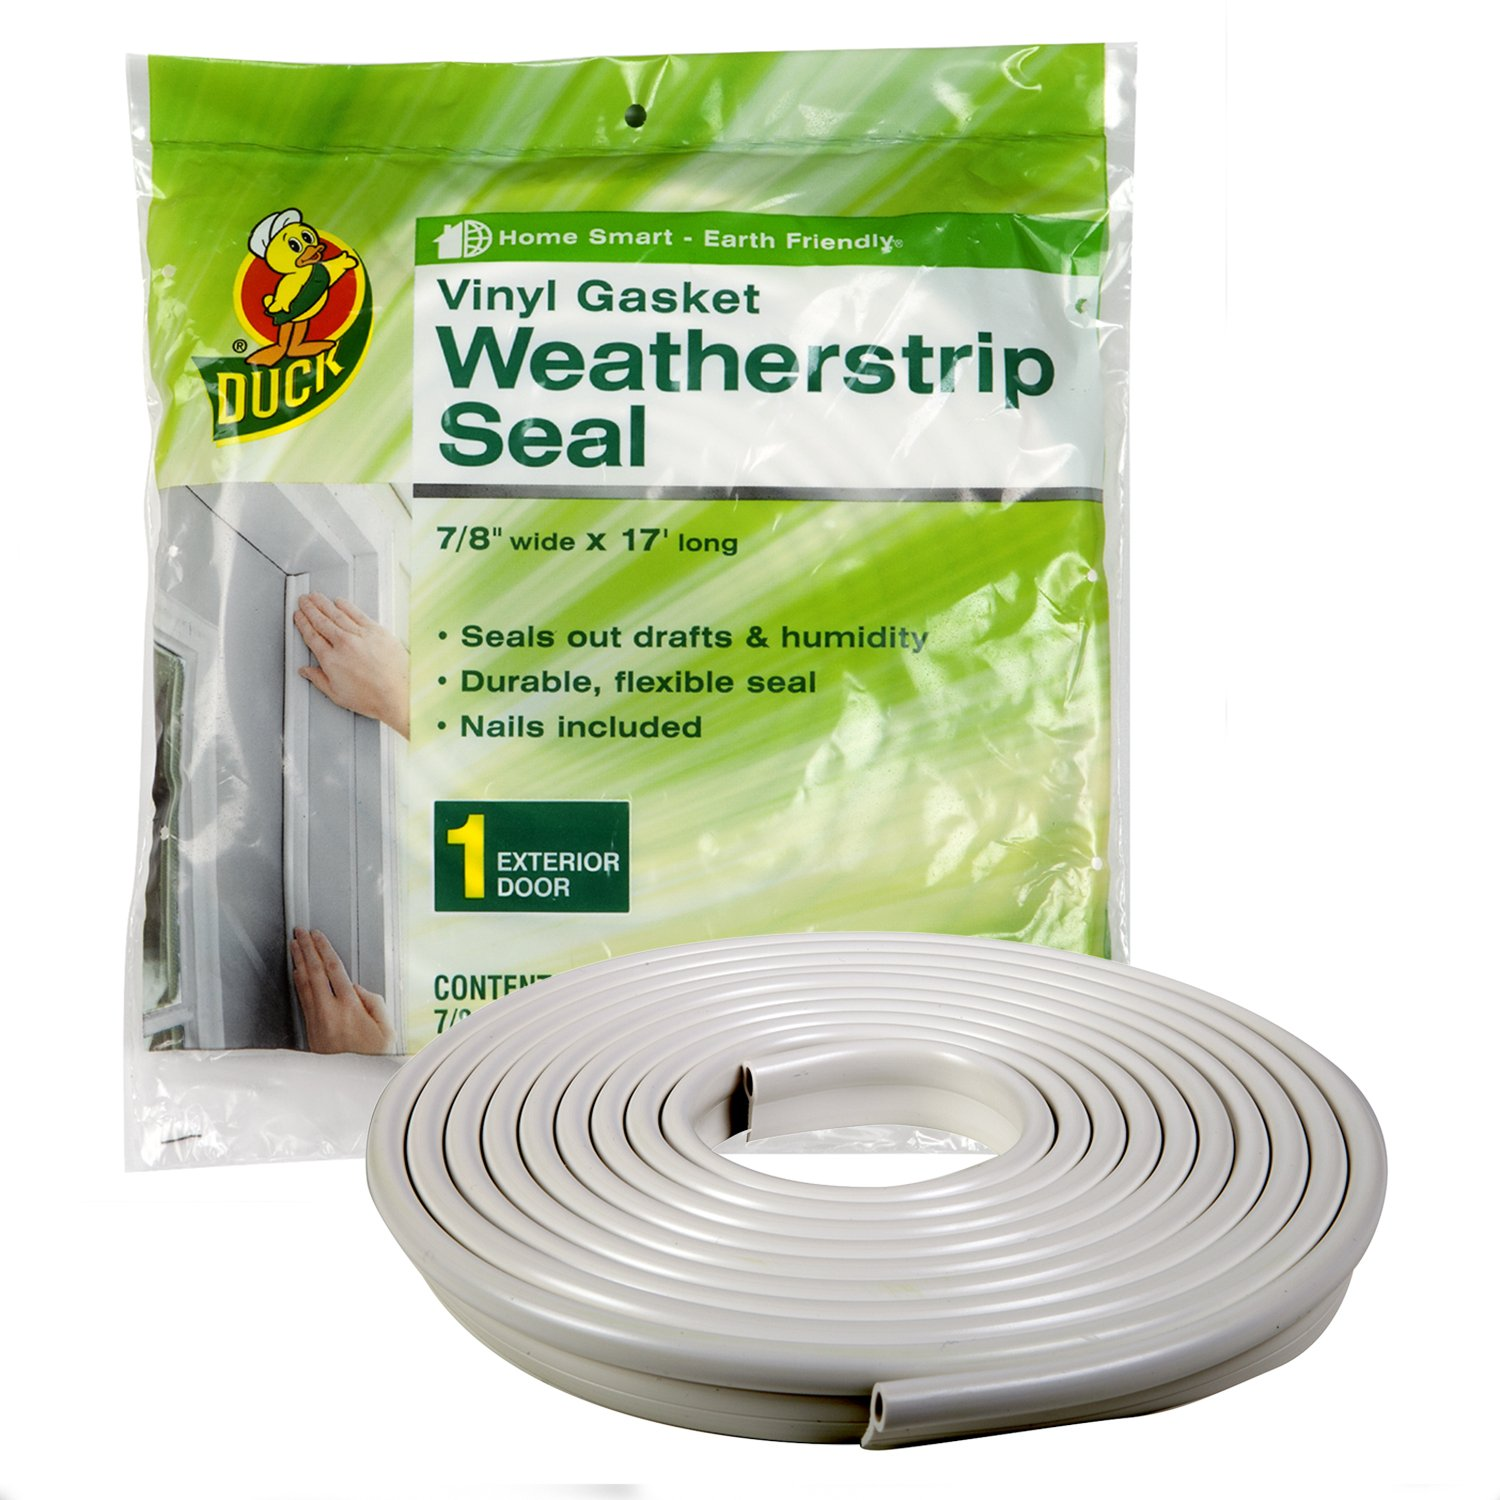 Duck Brand Vinyl Gasket Weatherstrip Seal, 1/4-Inch-by-7/8-Inch-by-17-Feet Gasket Weather Seal, 1280121